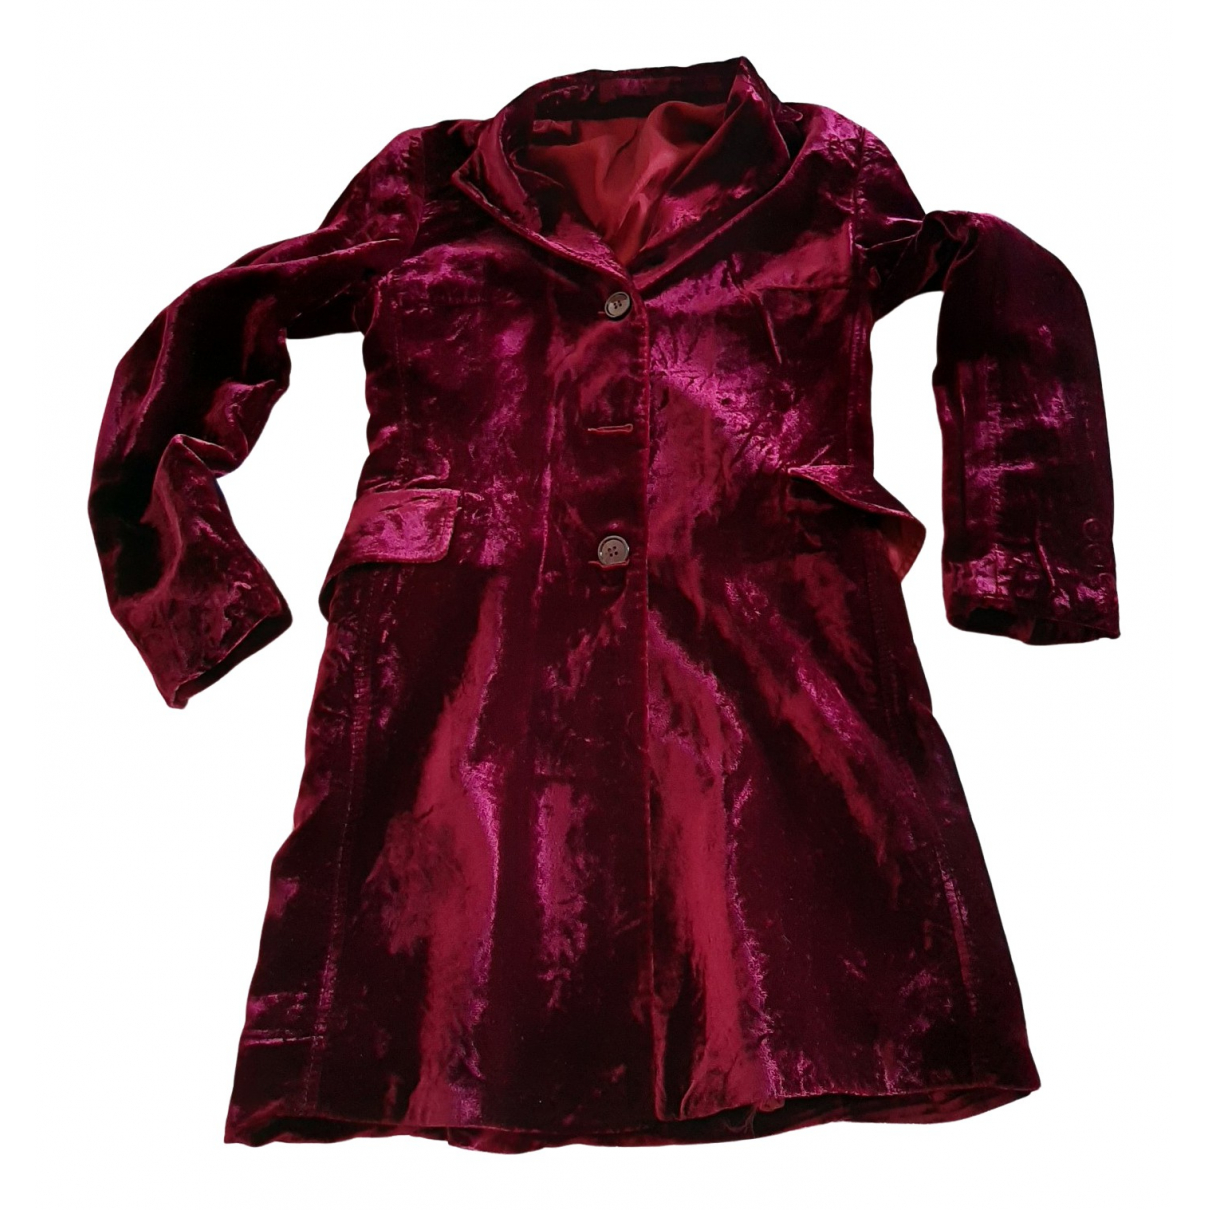 Non Signé / Unsigned \N Burgundy Velvet jacket for Women S International